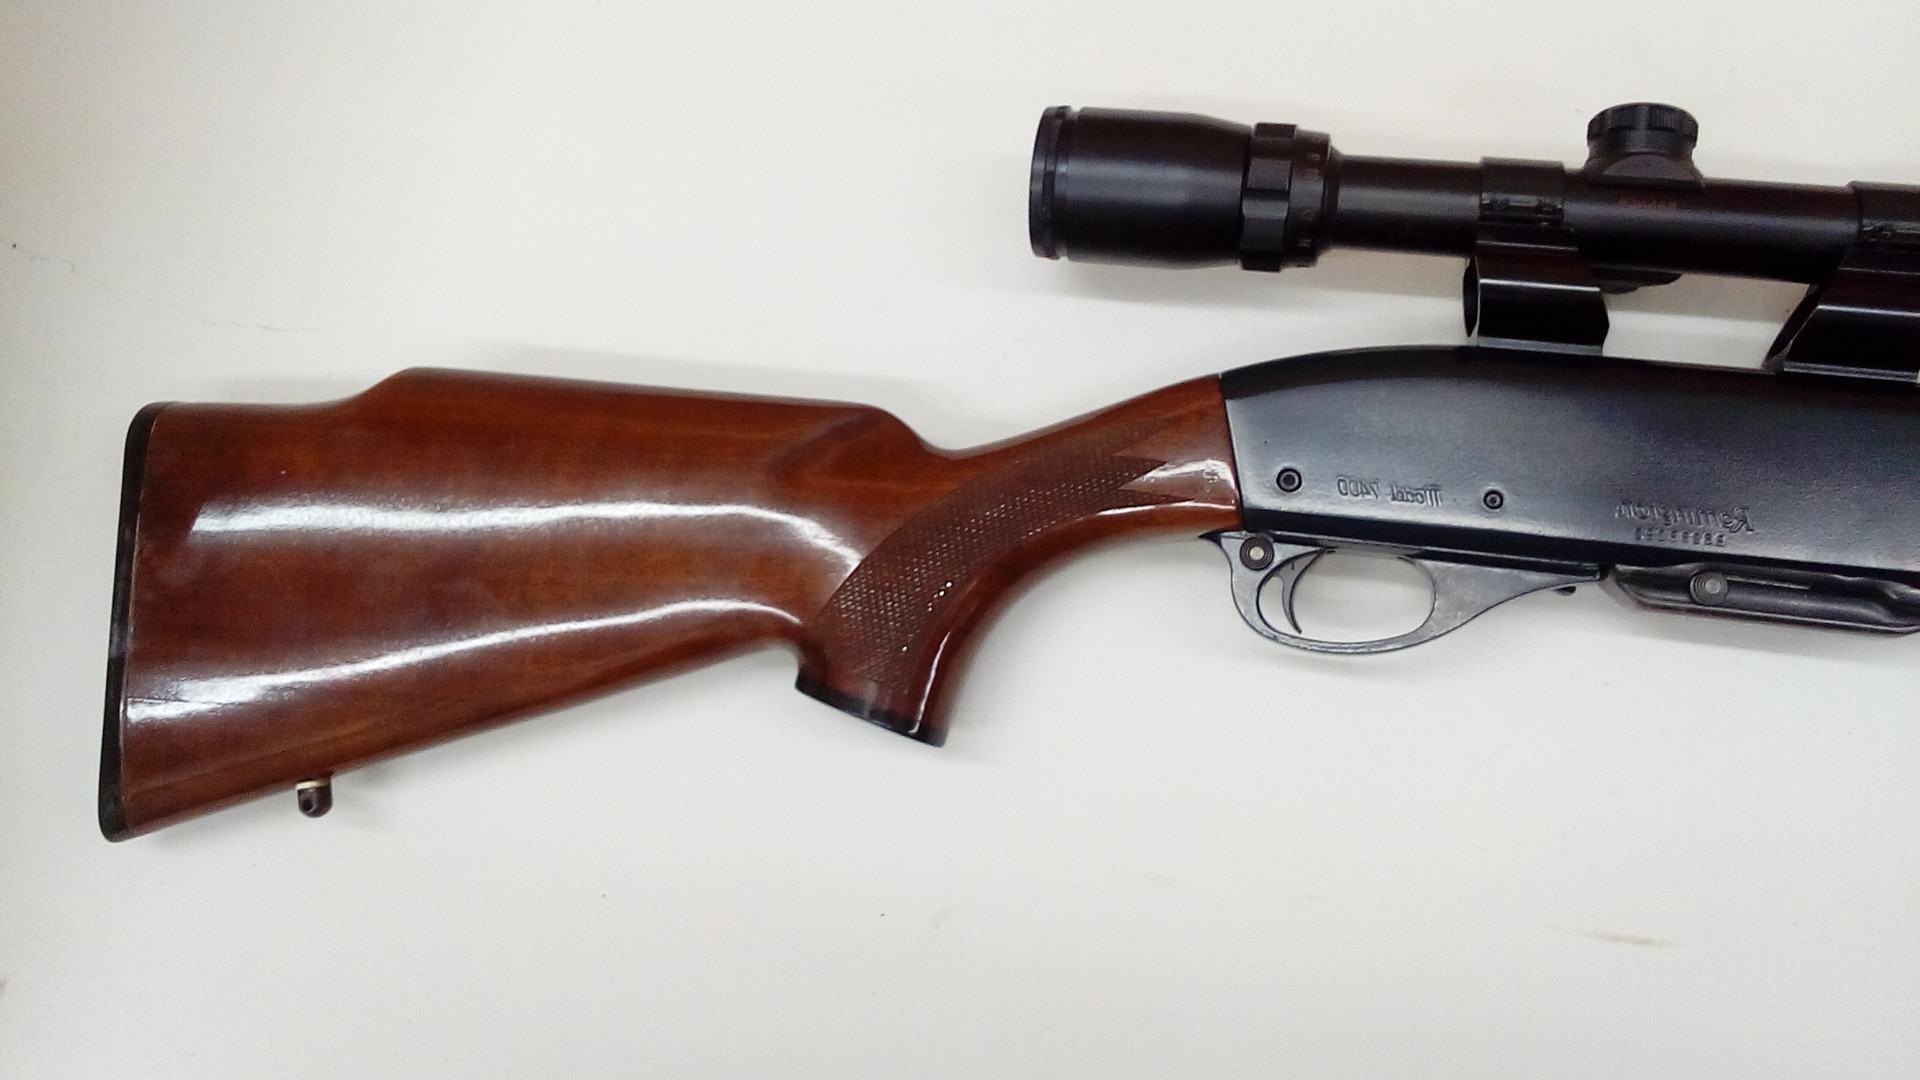 Remington 7400 stock refinished with high gloss polyurethane